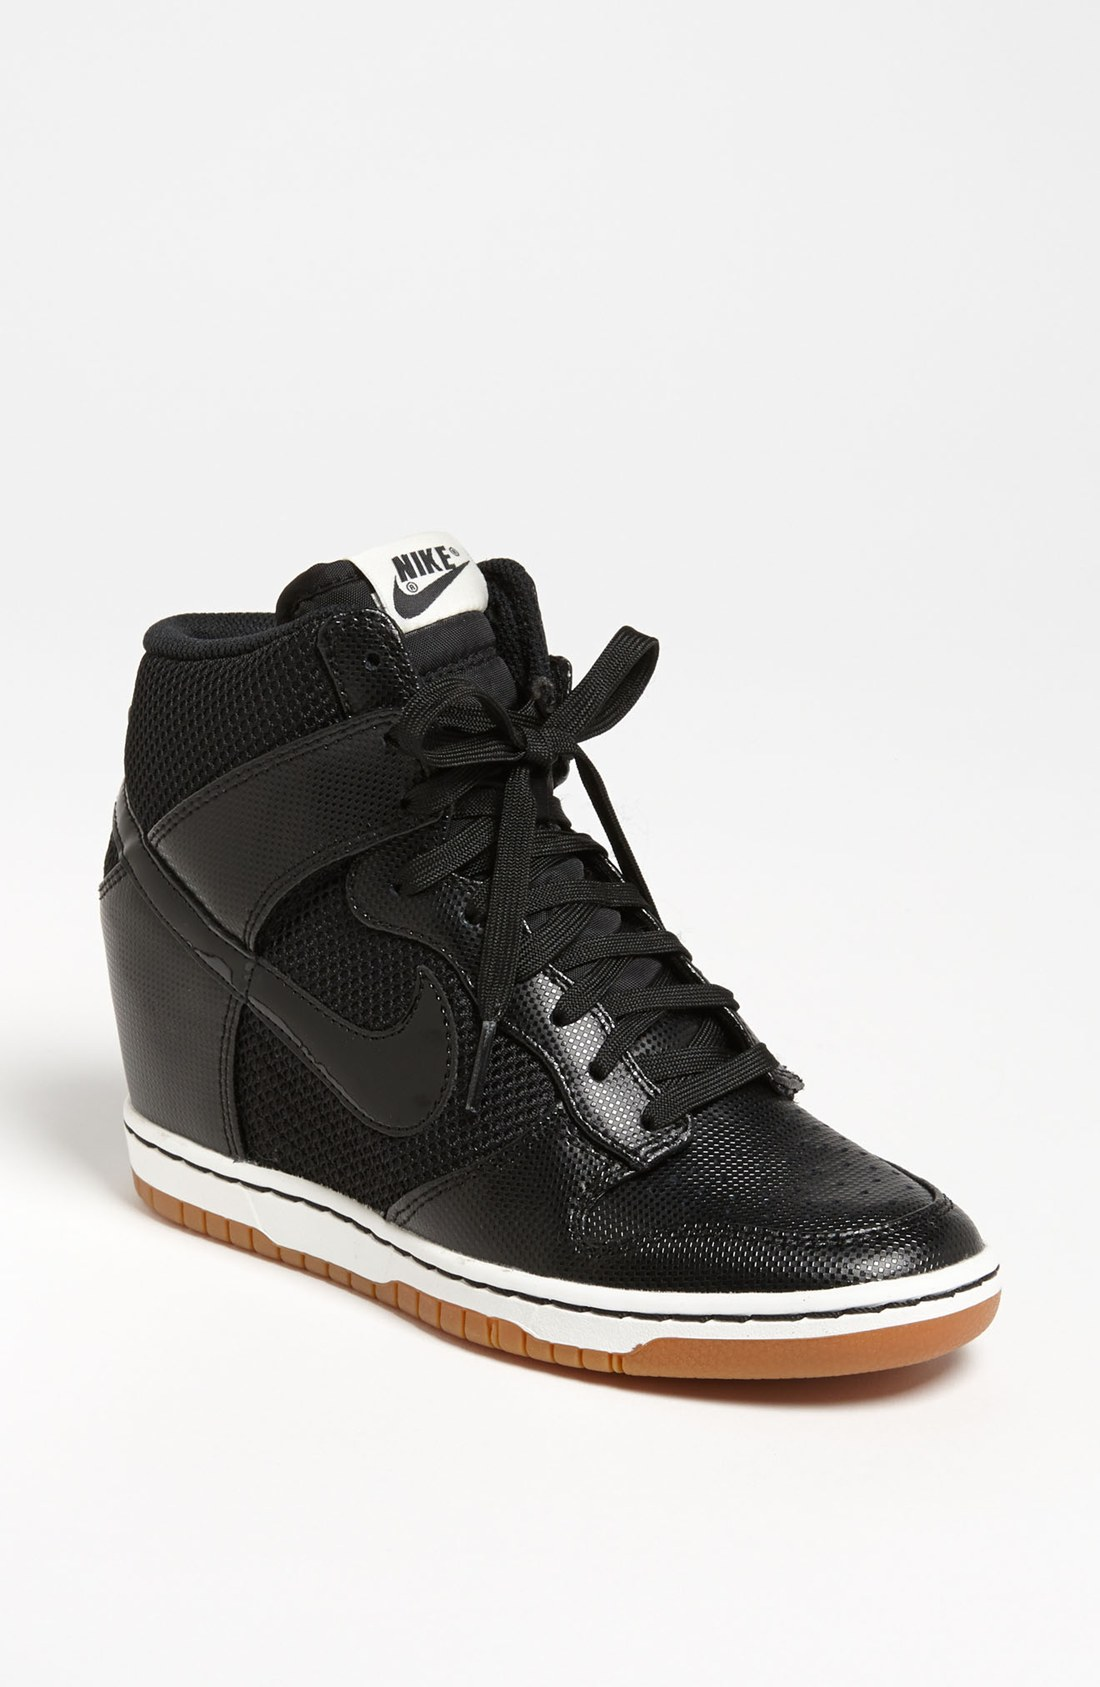 nike wedge sneakers black leather. Black Bedroom Furniture Sets. Home Design Ideas